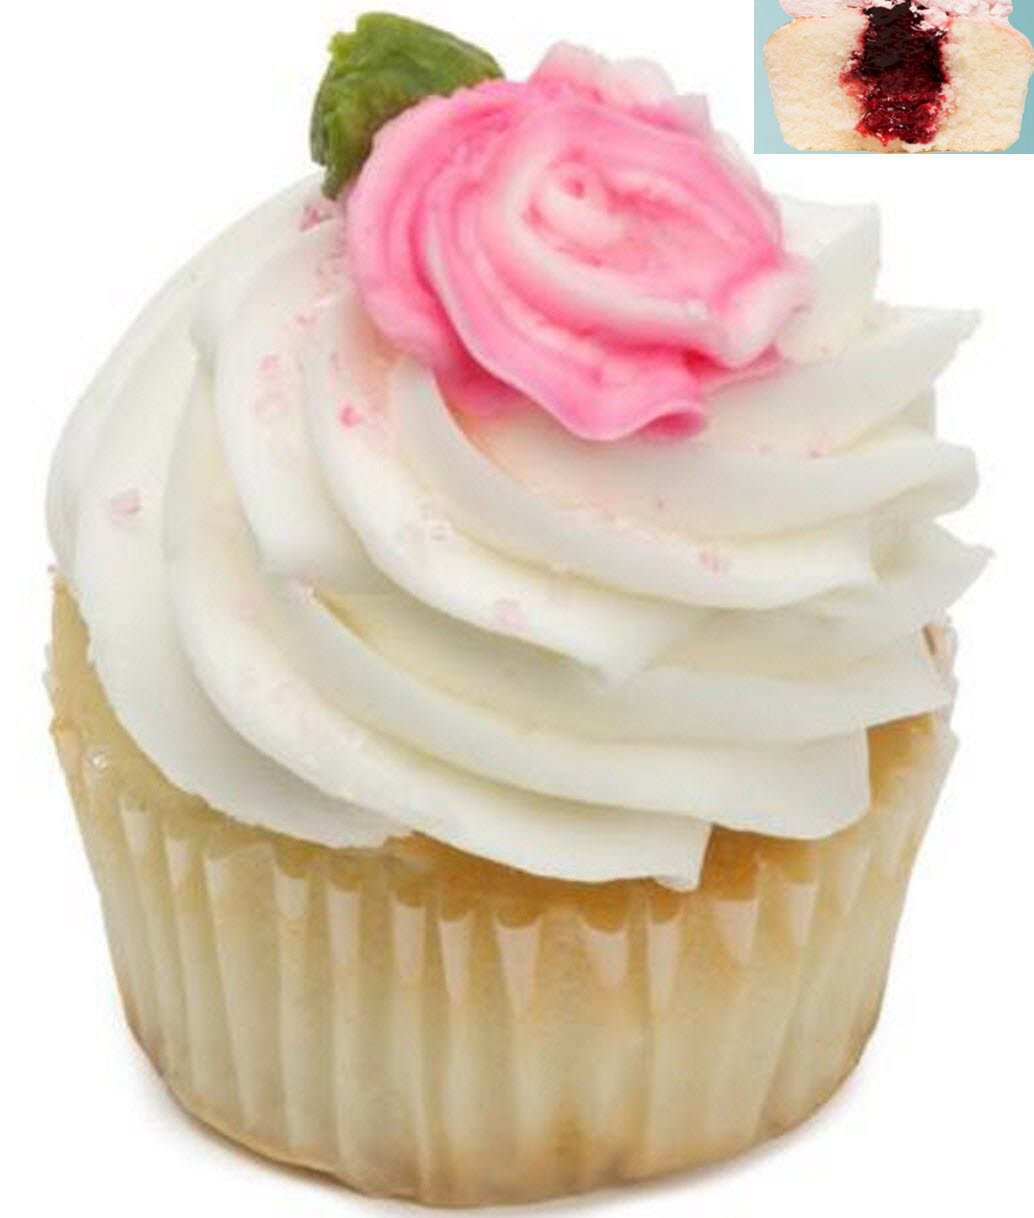 Strawberry Shortcake Cupcakes - Vanilla Cake Dessert - 12 Pack - Baked Fresh Day of Order by House of Cupcakes